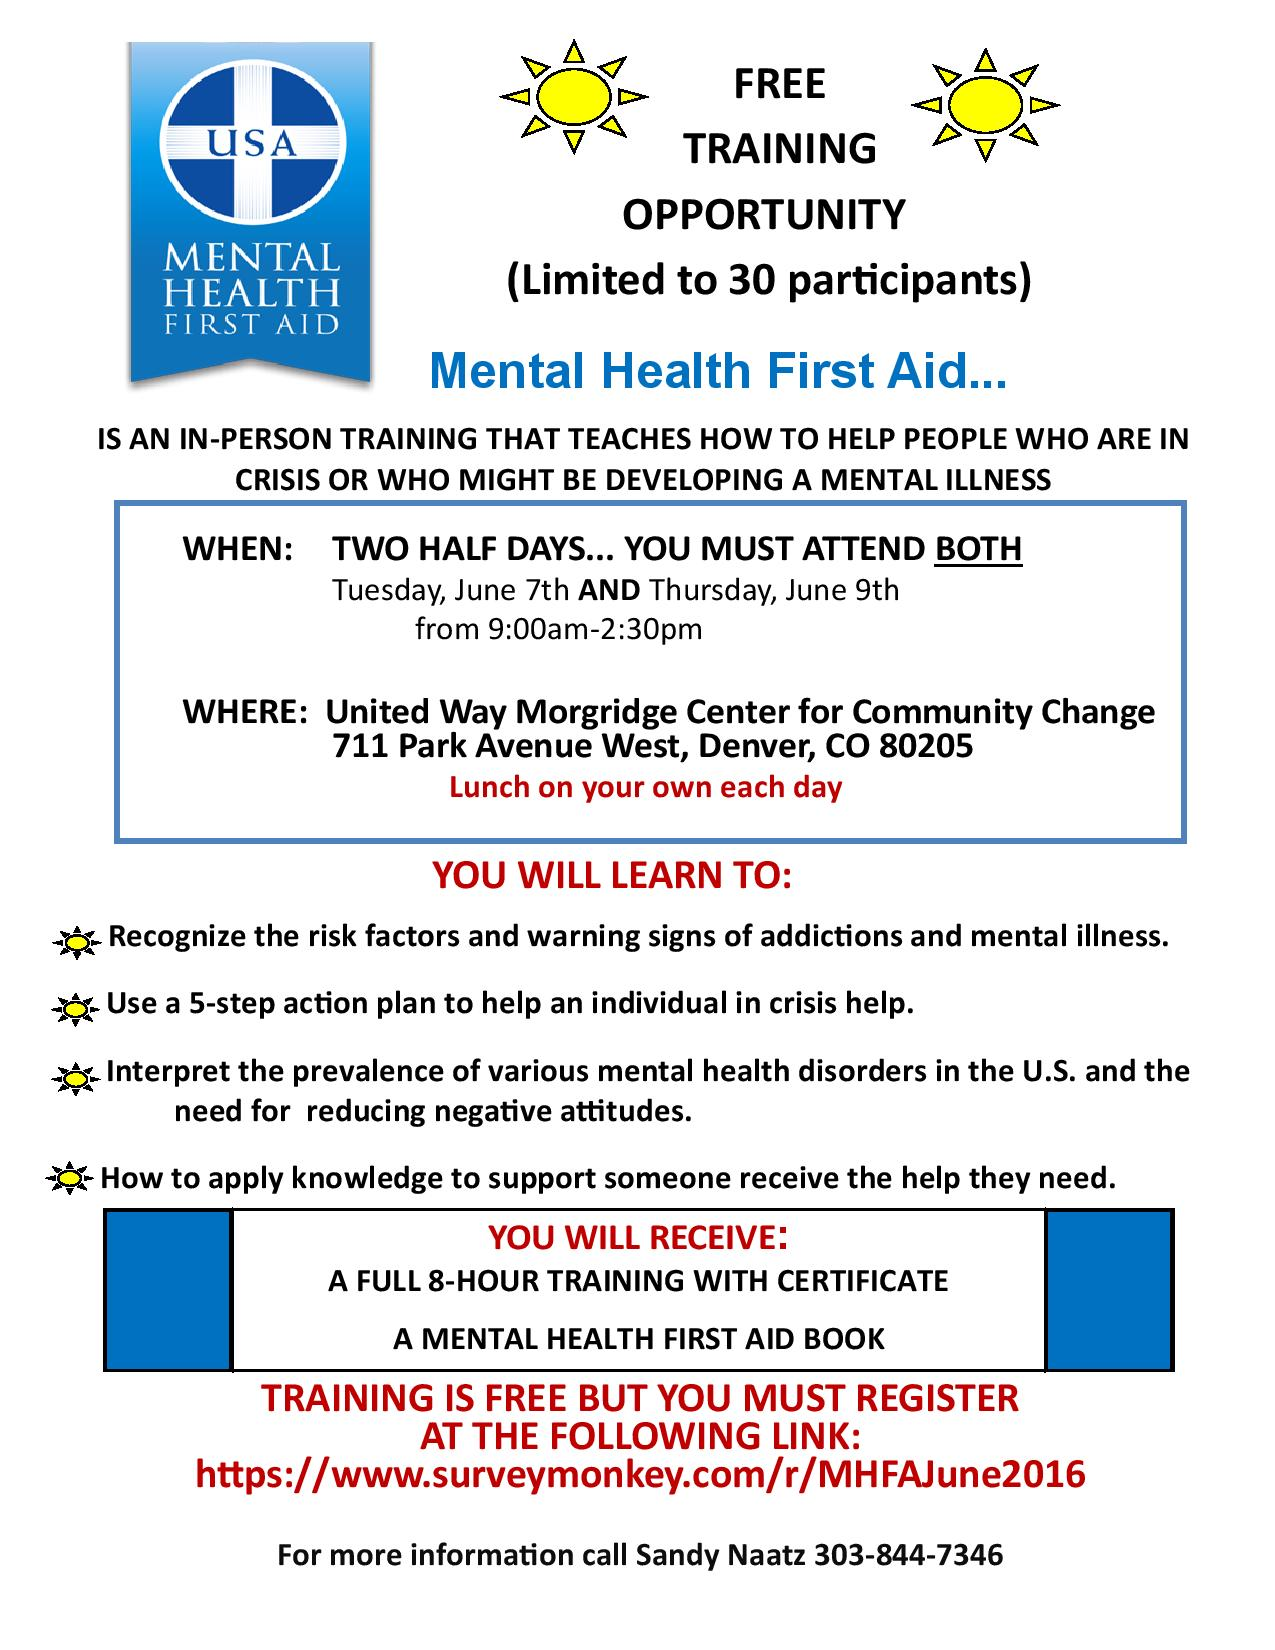 Free Mental Health First Aid Training on June 7th